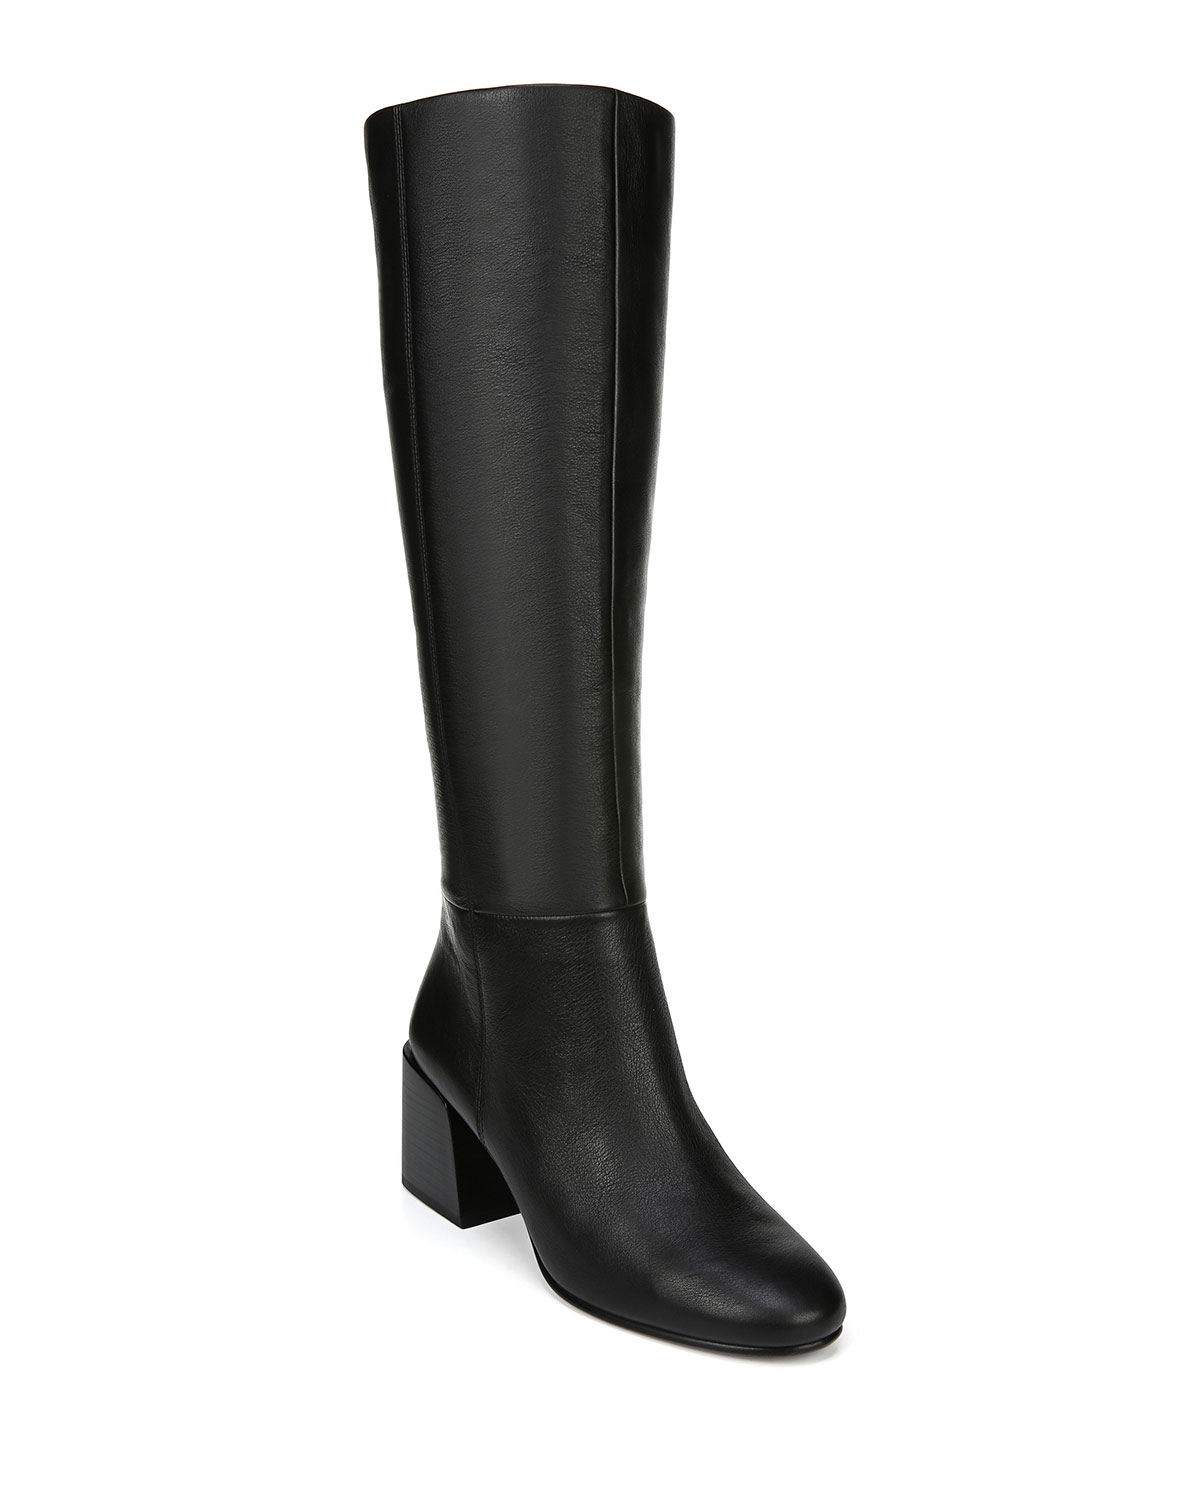 Via Spiga Boots DESI LEATHER KNEE BOOTS